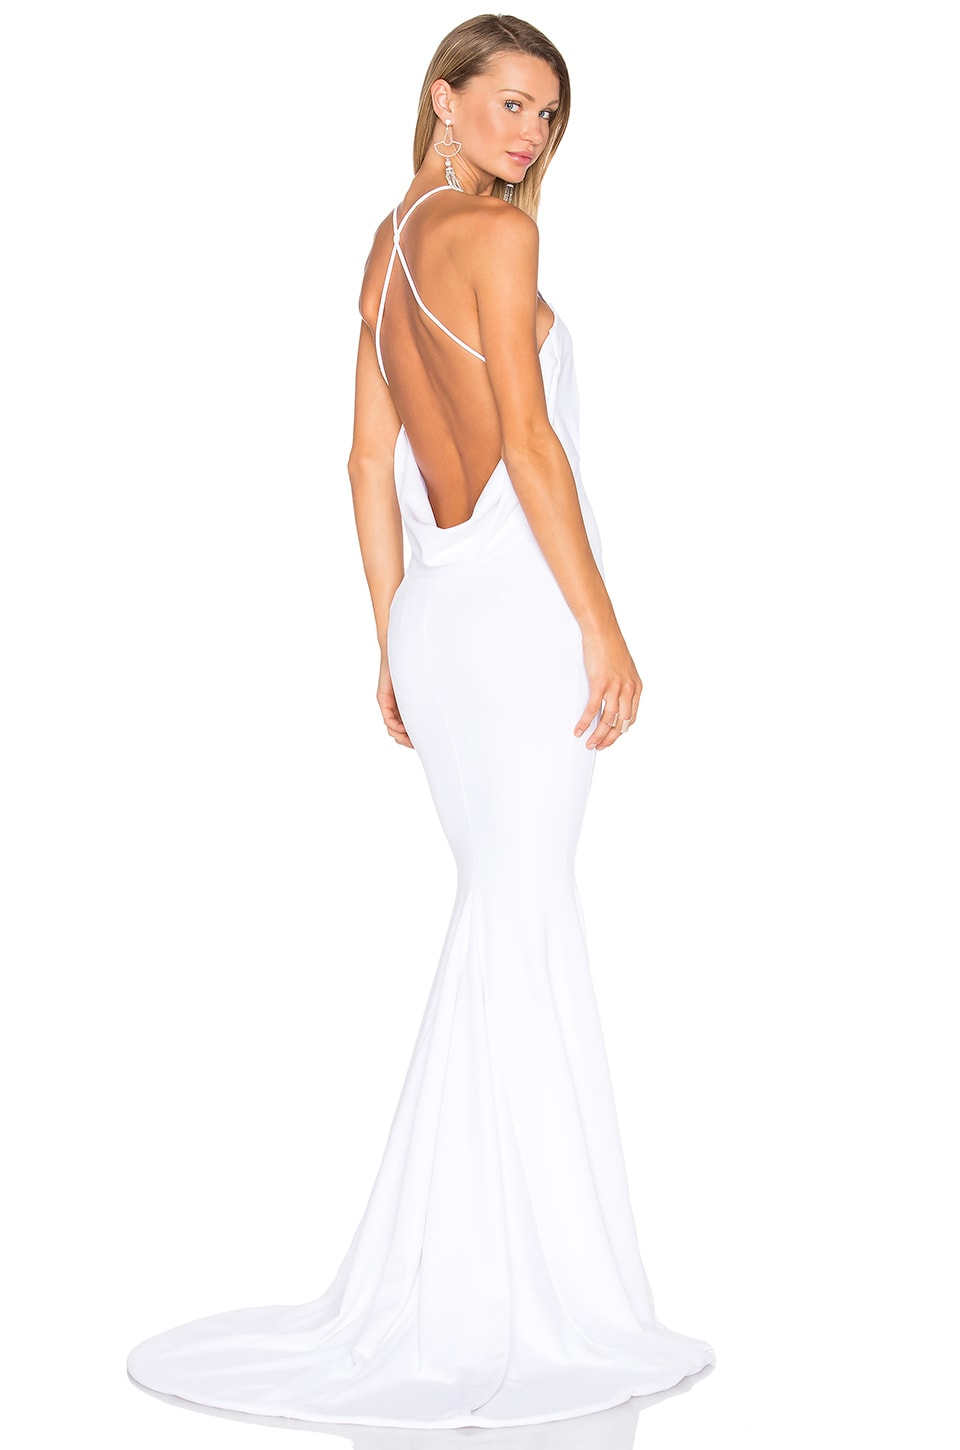 gemeli power barthelemy gown in matte crepe white revolve